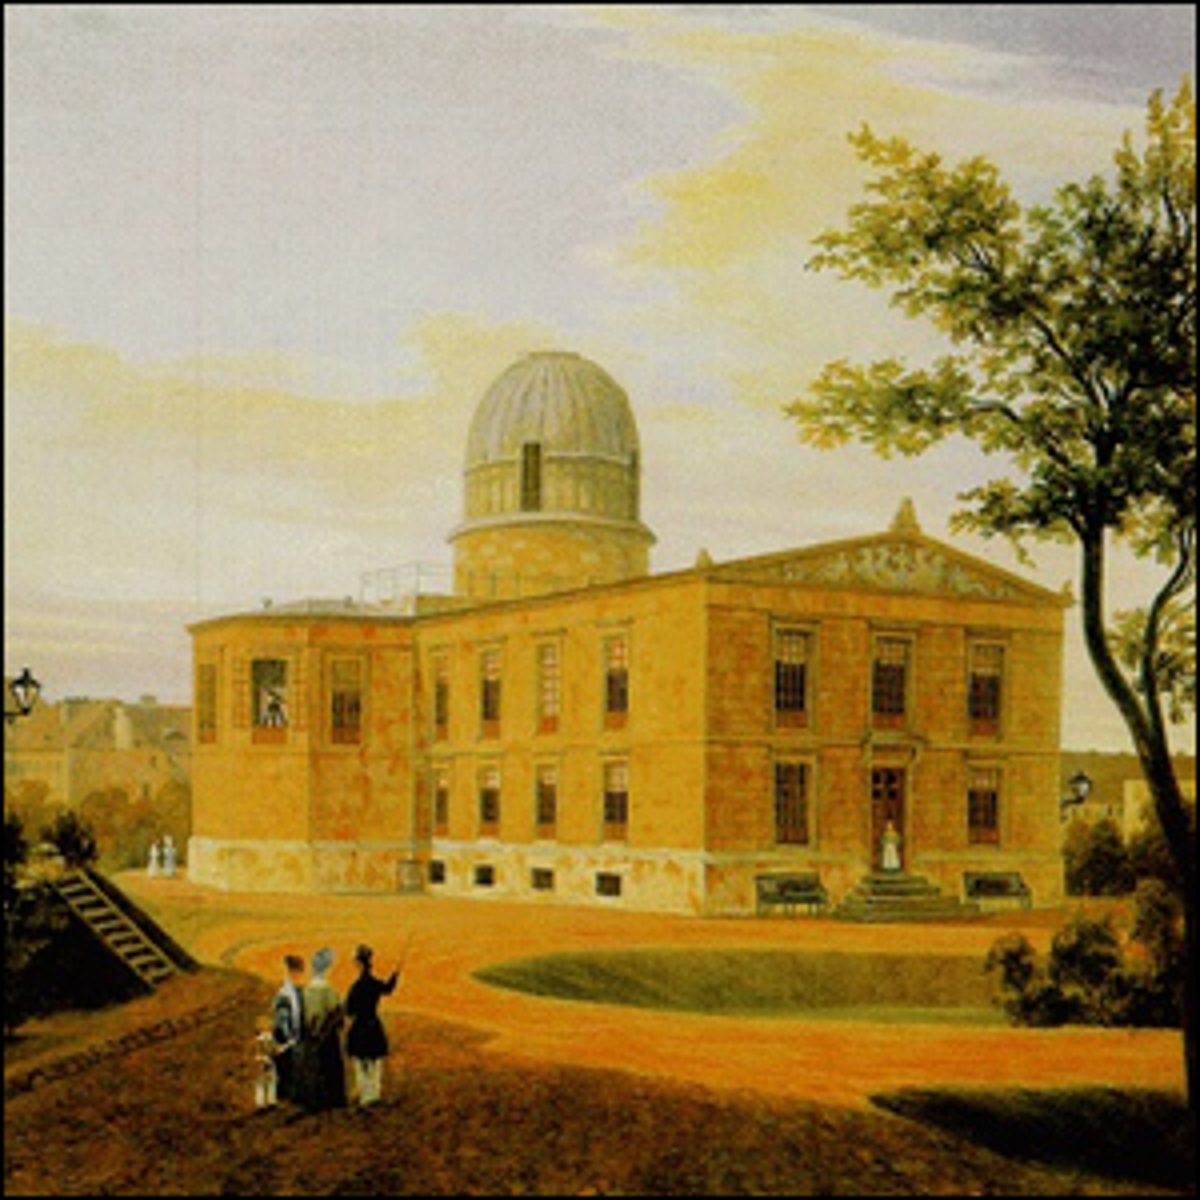 An 1838 painting of the New Berlin Observatory at Linden Street.